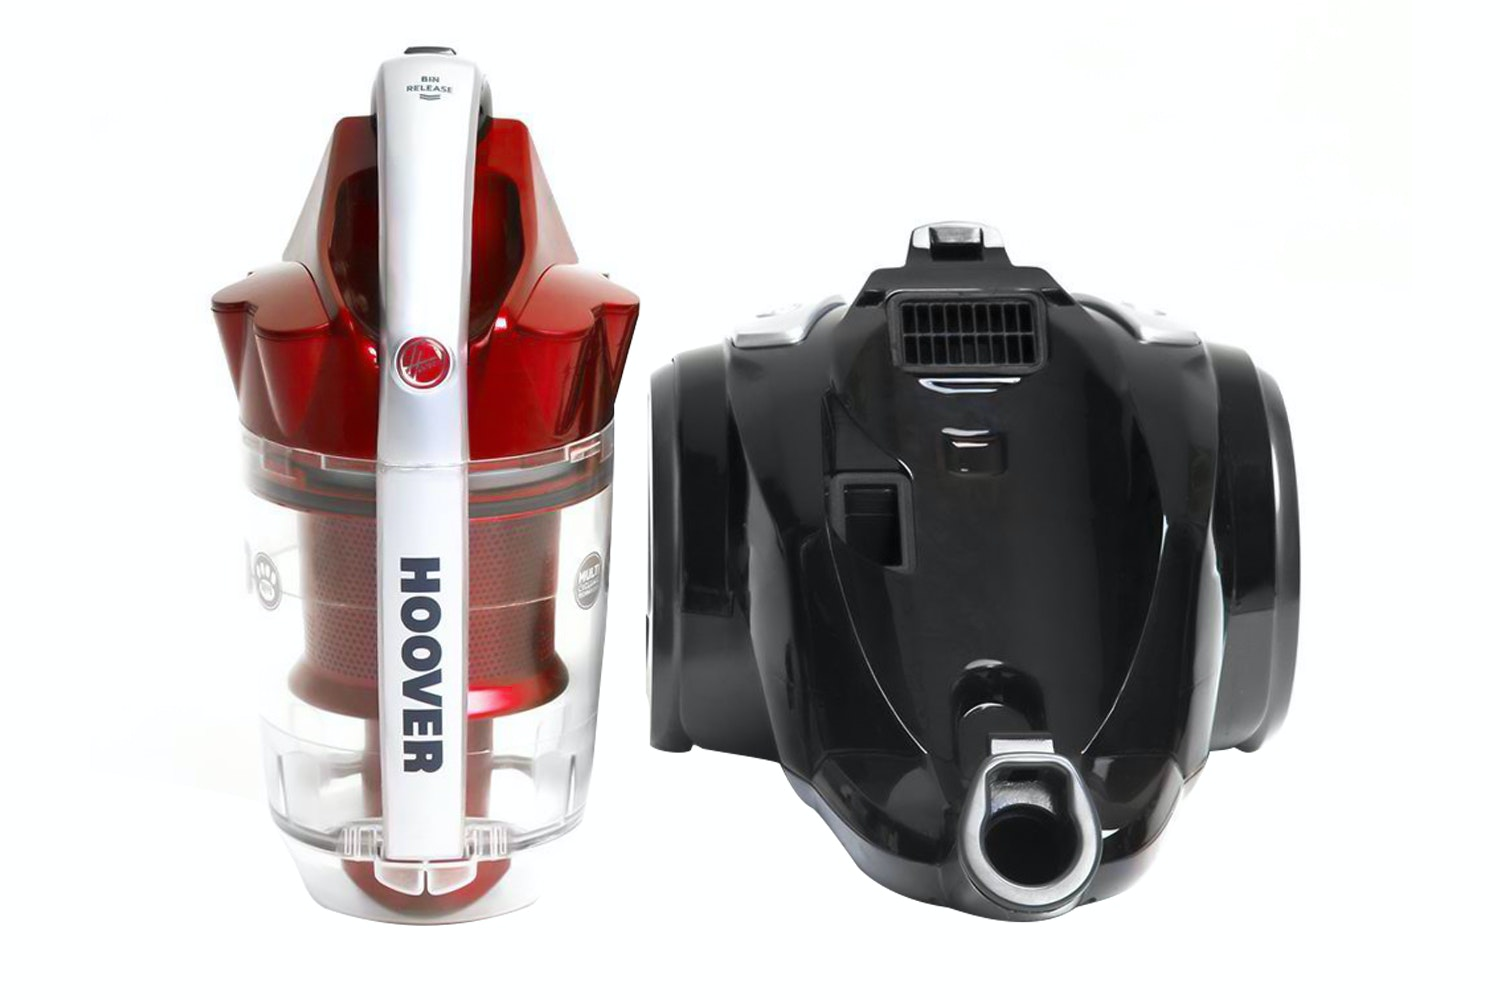 Hoover Optimum Bagless Vacuum Cleaner | KS51_OP2